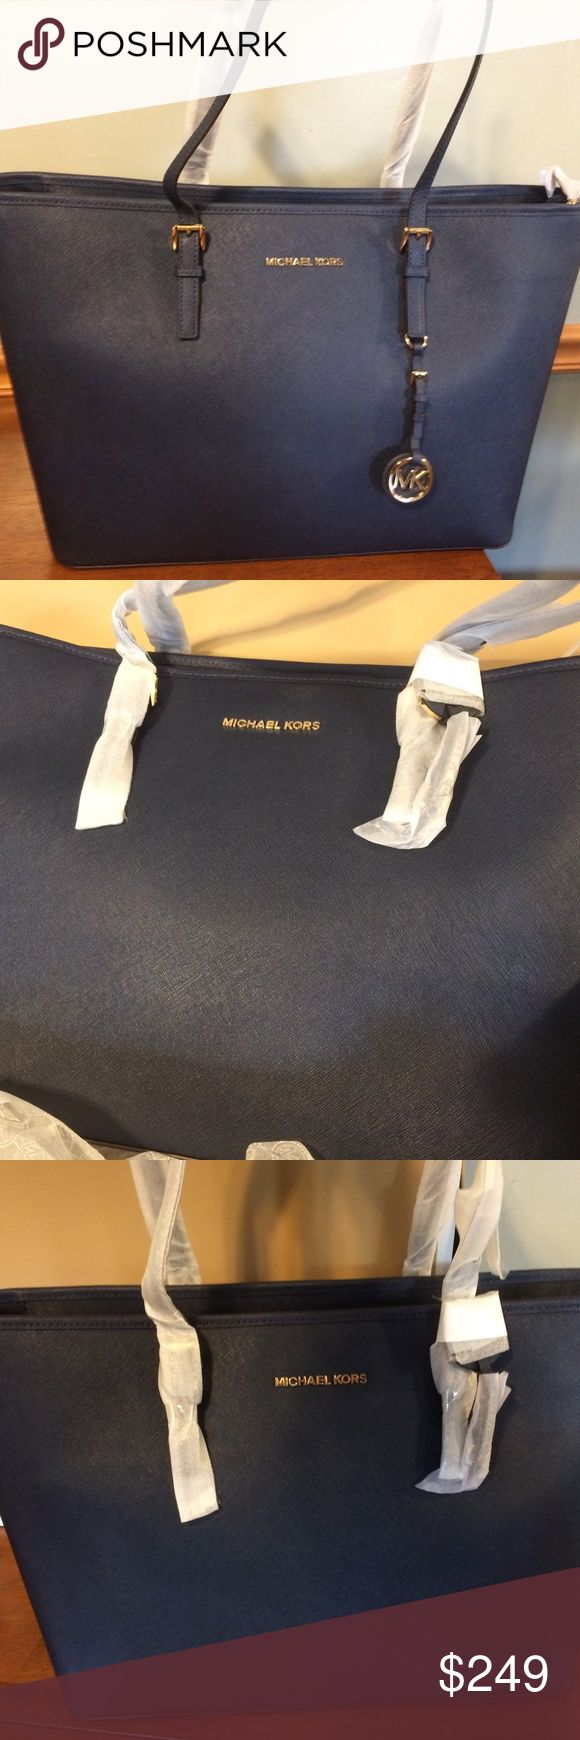 """NWT Michael Kors Jet Set Travel Medium Tote - Navy Jet Set Travel Medium Saffiano Leather Top-Zip Tote in hard to find Navy color. Beautiful, classic bag perfect for every day or travel use -- new with tags, still in tissue packaging.  Zip top with 3 large interior compartments, including a cushioned middle pocket perfect for laptop or tablet. 6 additional pockets (both open & zippered) to keep you organized throughout the day.  Dimensions: 11.5""""H x 15""""W x 5.5""""D; Handle Drop: 8.5"""" Michael…"""